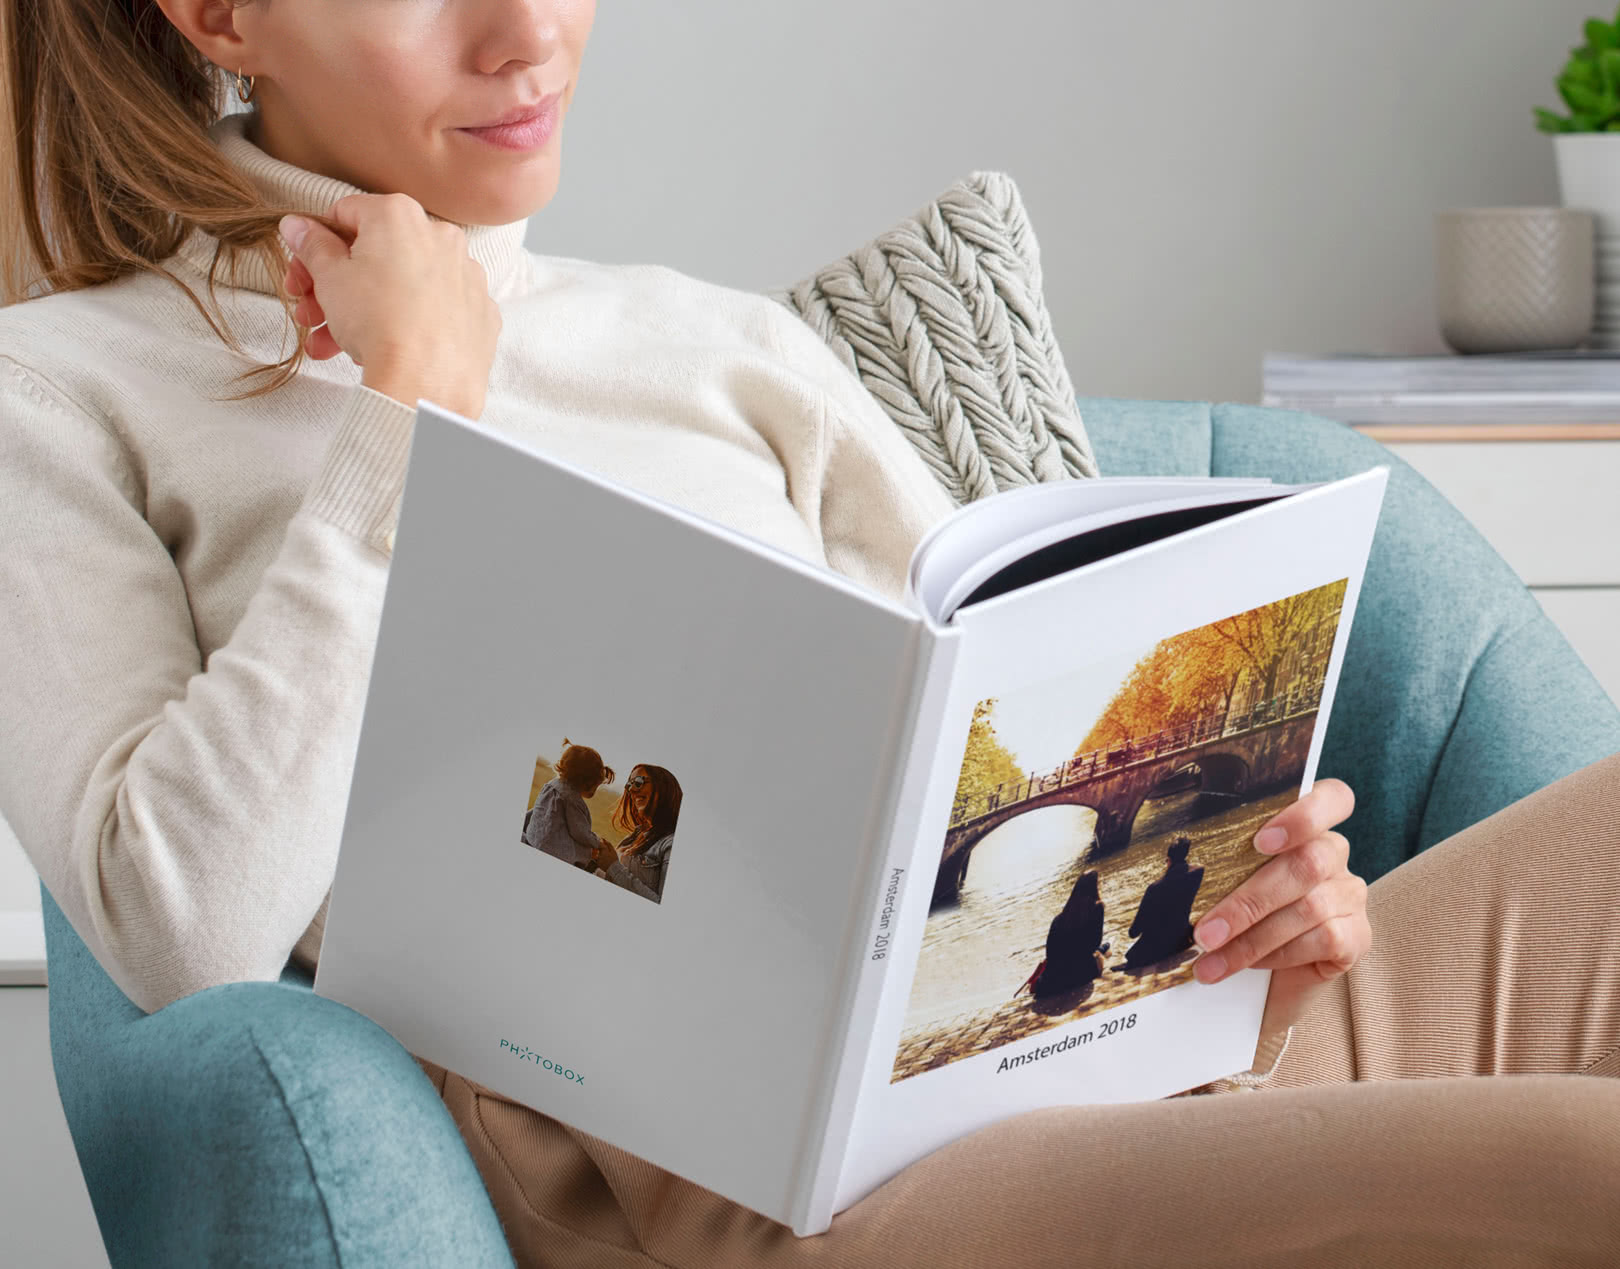 Easy Create Photo Books